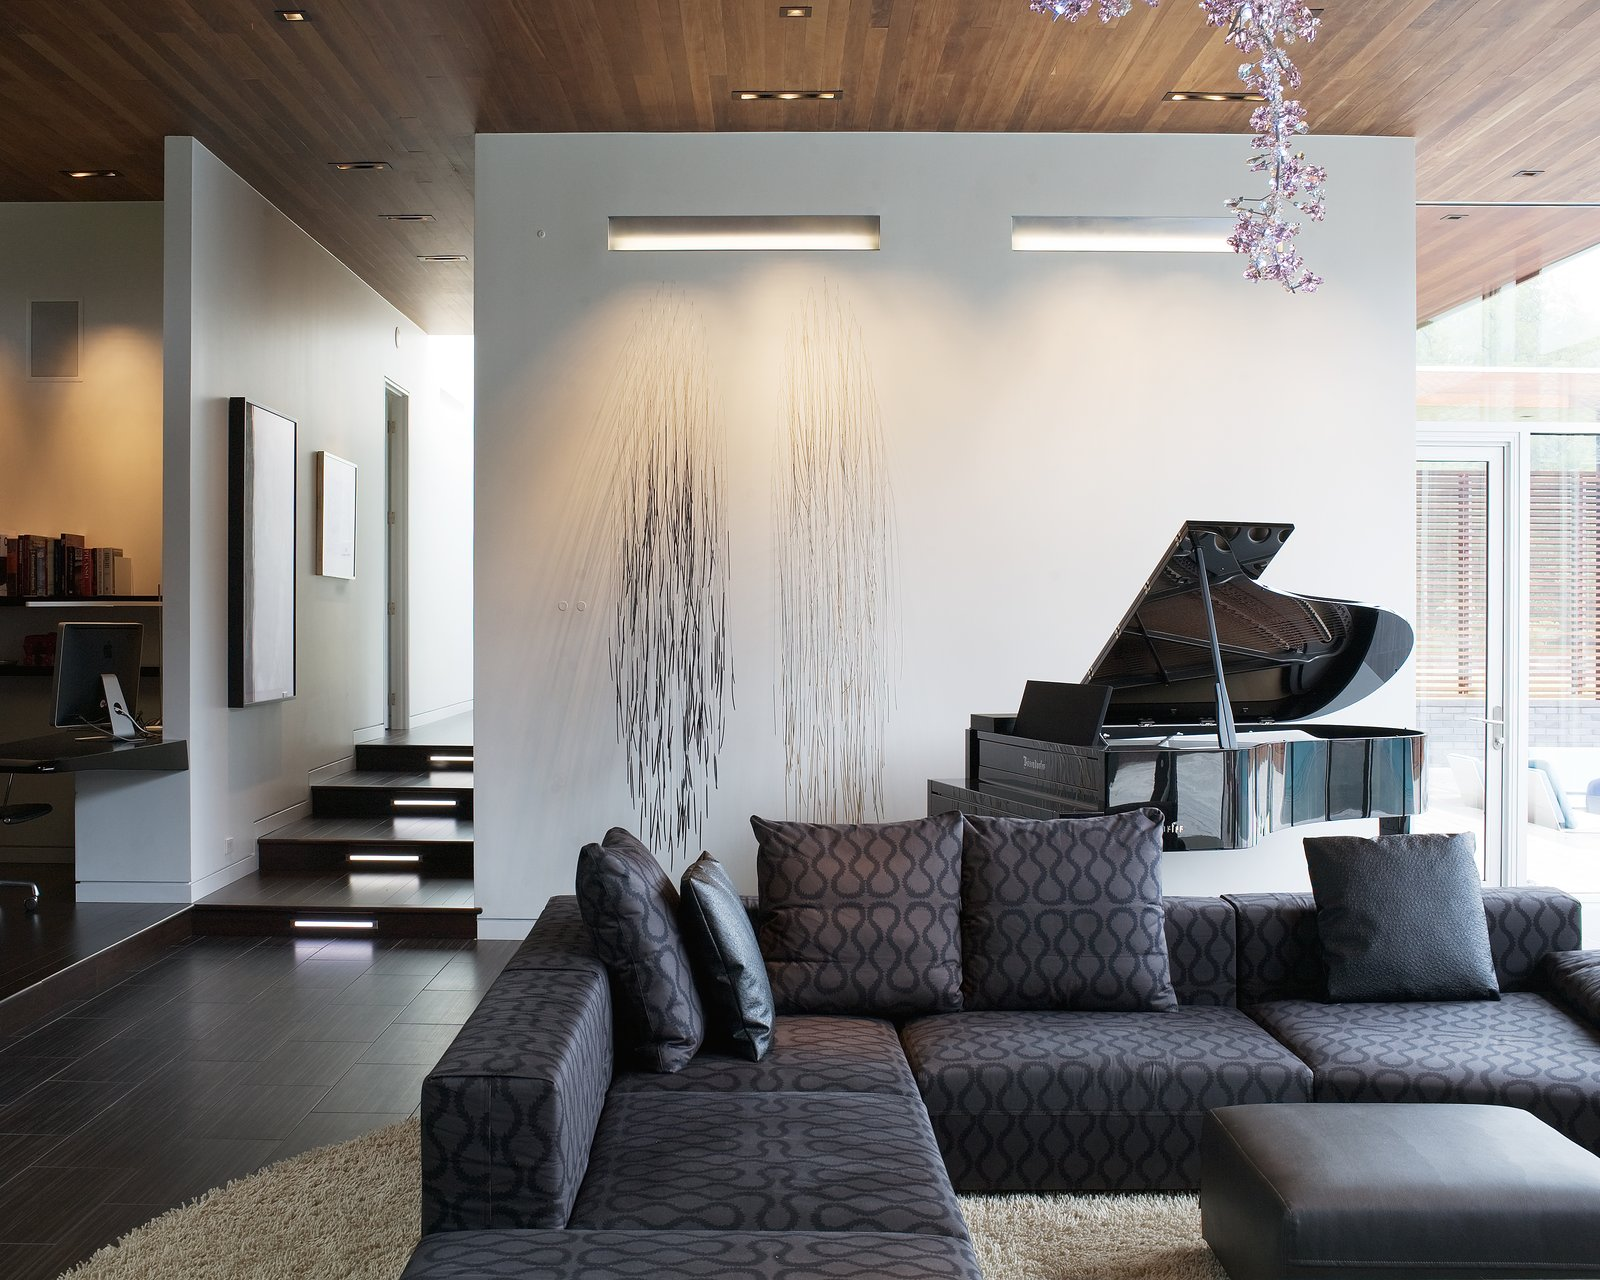 In the living room, several art installations add flair, including one special addition from Anne Lindberg, an artist known for understated line drawings. Strands of welding wire with tiny sculpted wood ends were drilled into the wall near the piano so they would stick out and move with breezes from the courtyard. Its cascading lines contrast directly with the curvilinear, soft pink Swarovski crystal chandelier by Tord Boontje.  Photo 6 of 10 in A Bold Home Creatively Combines Curves and Modern Lines